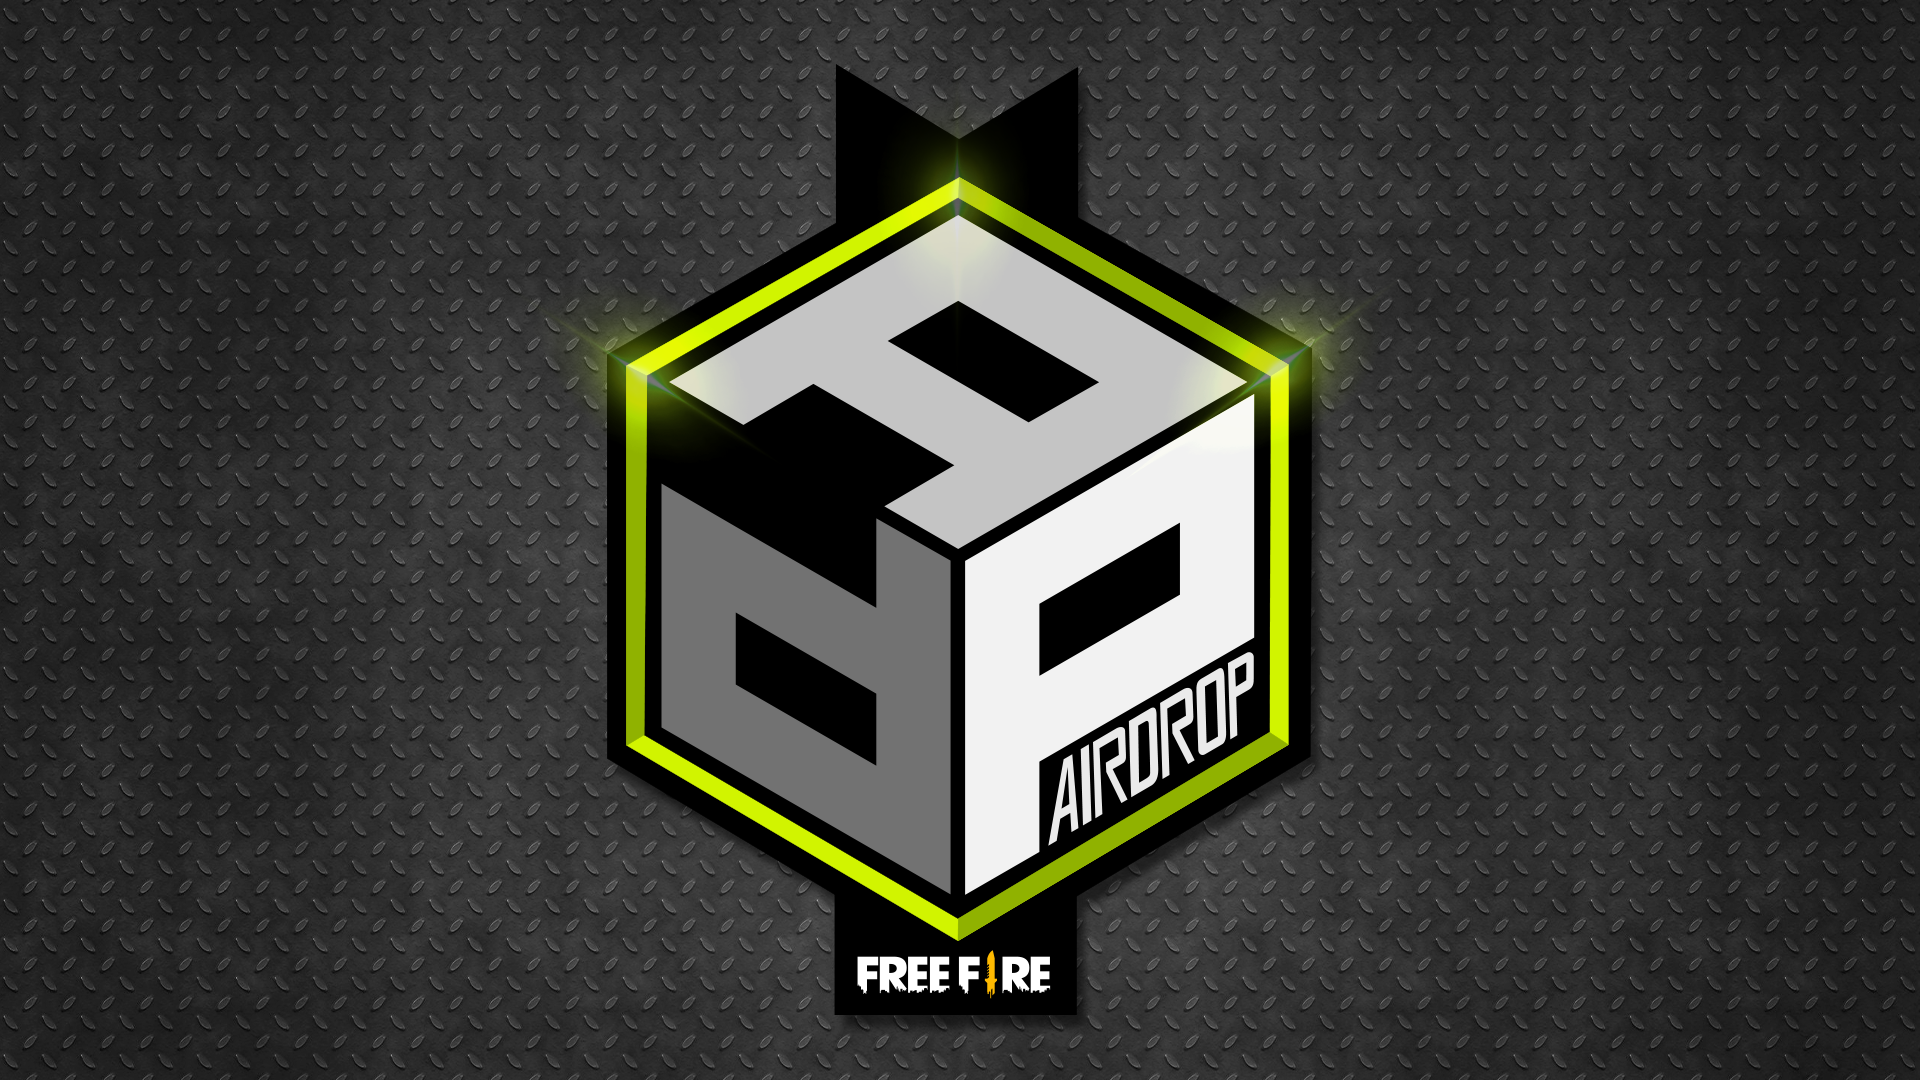 Airdrop Free Fire